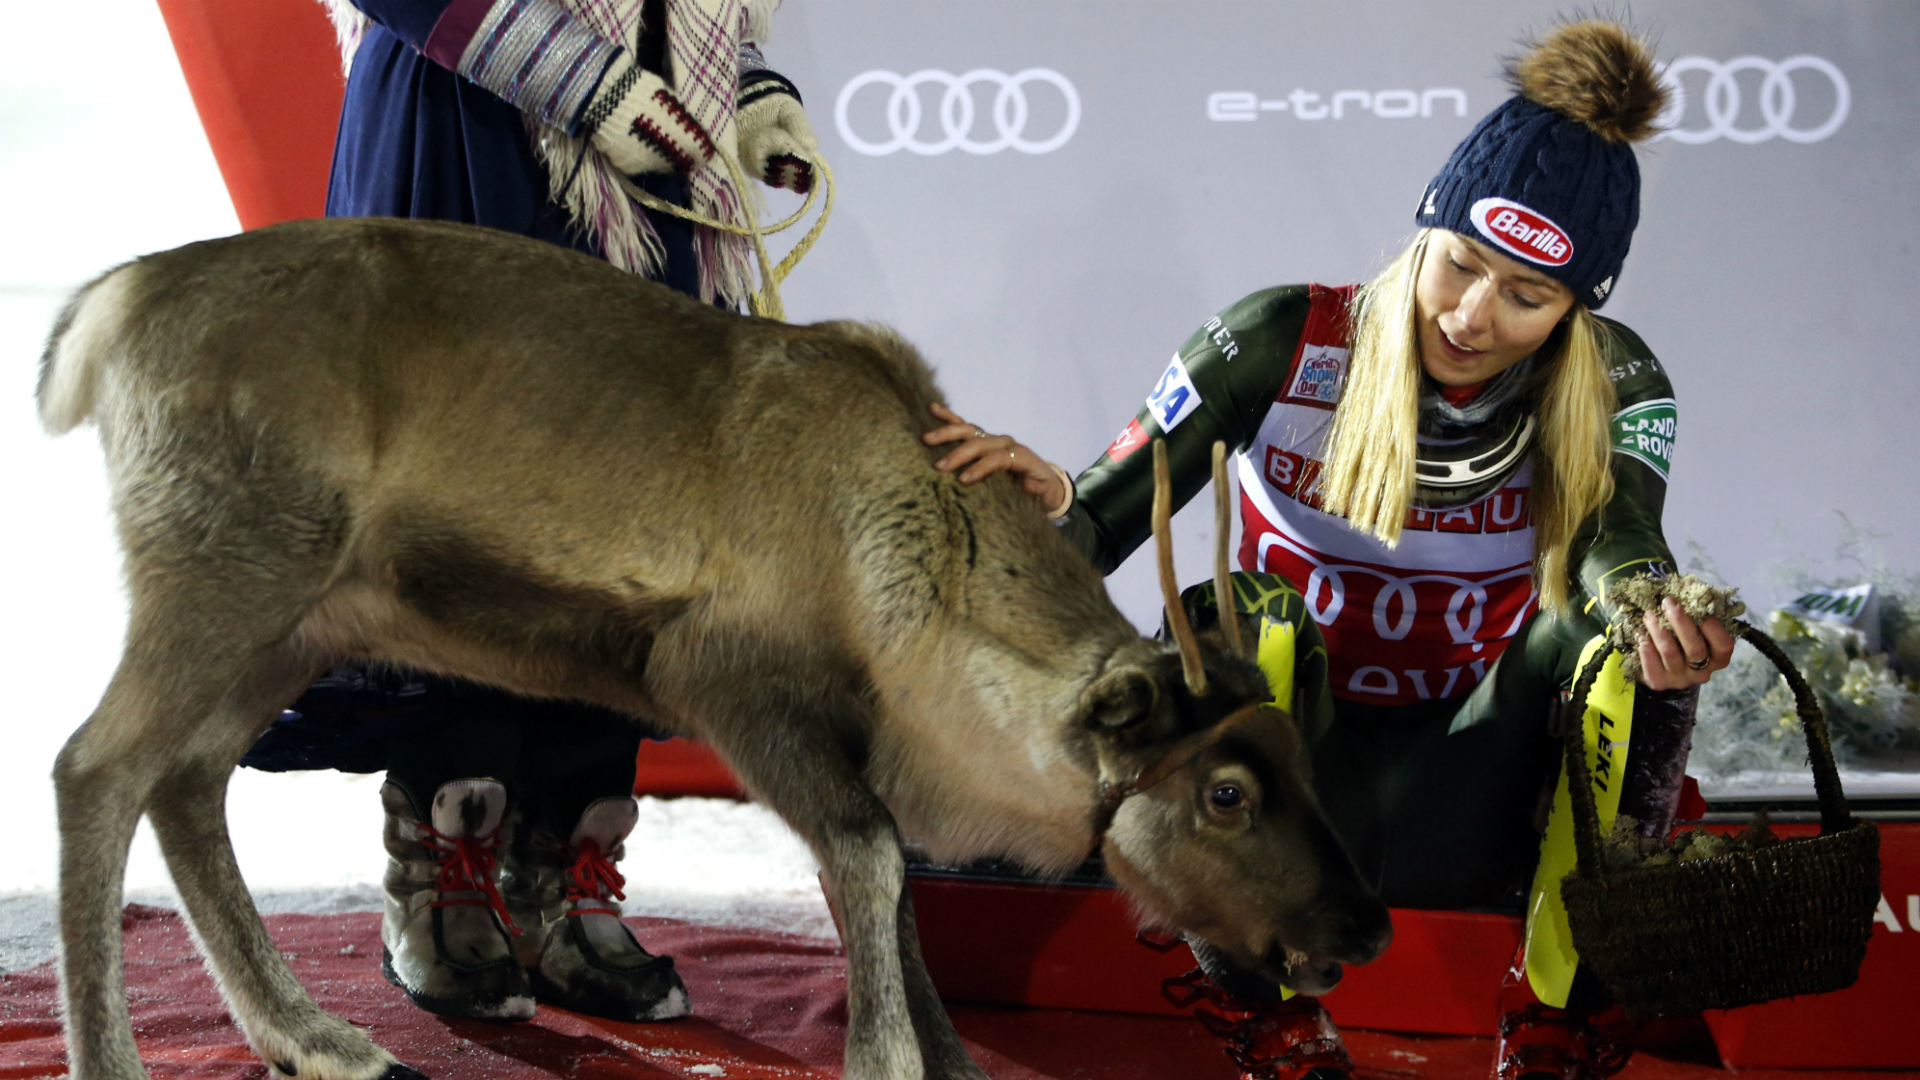 Look out Santa! Record-breaking Shiffrin wins fourth reindeer in Levi